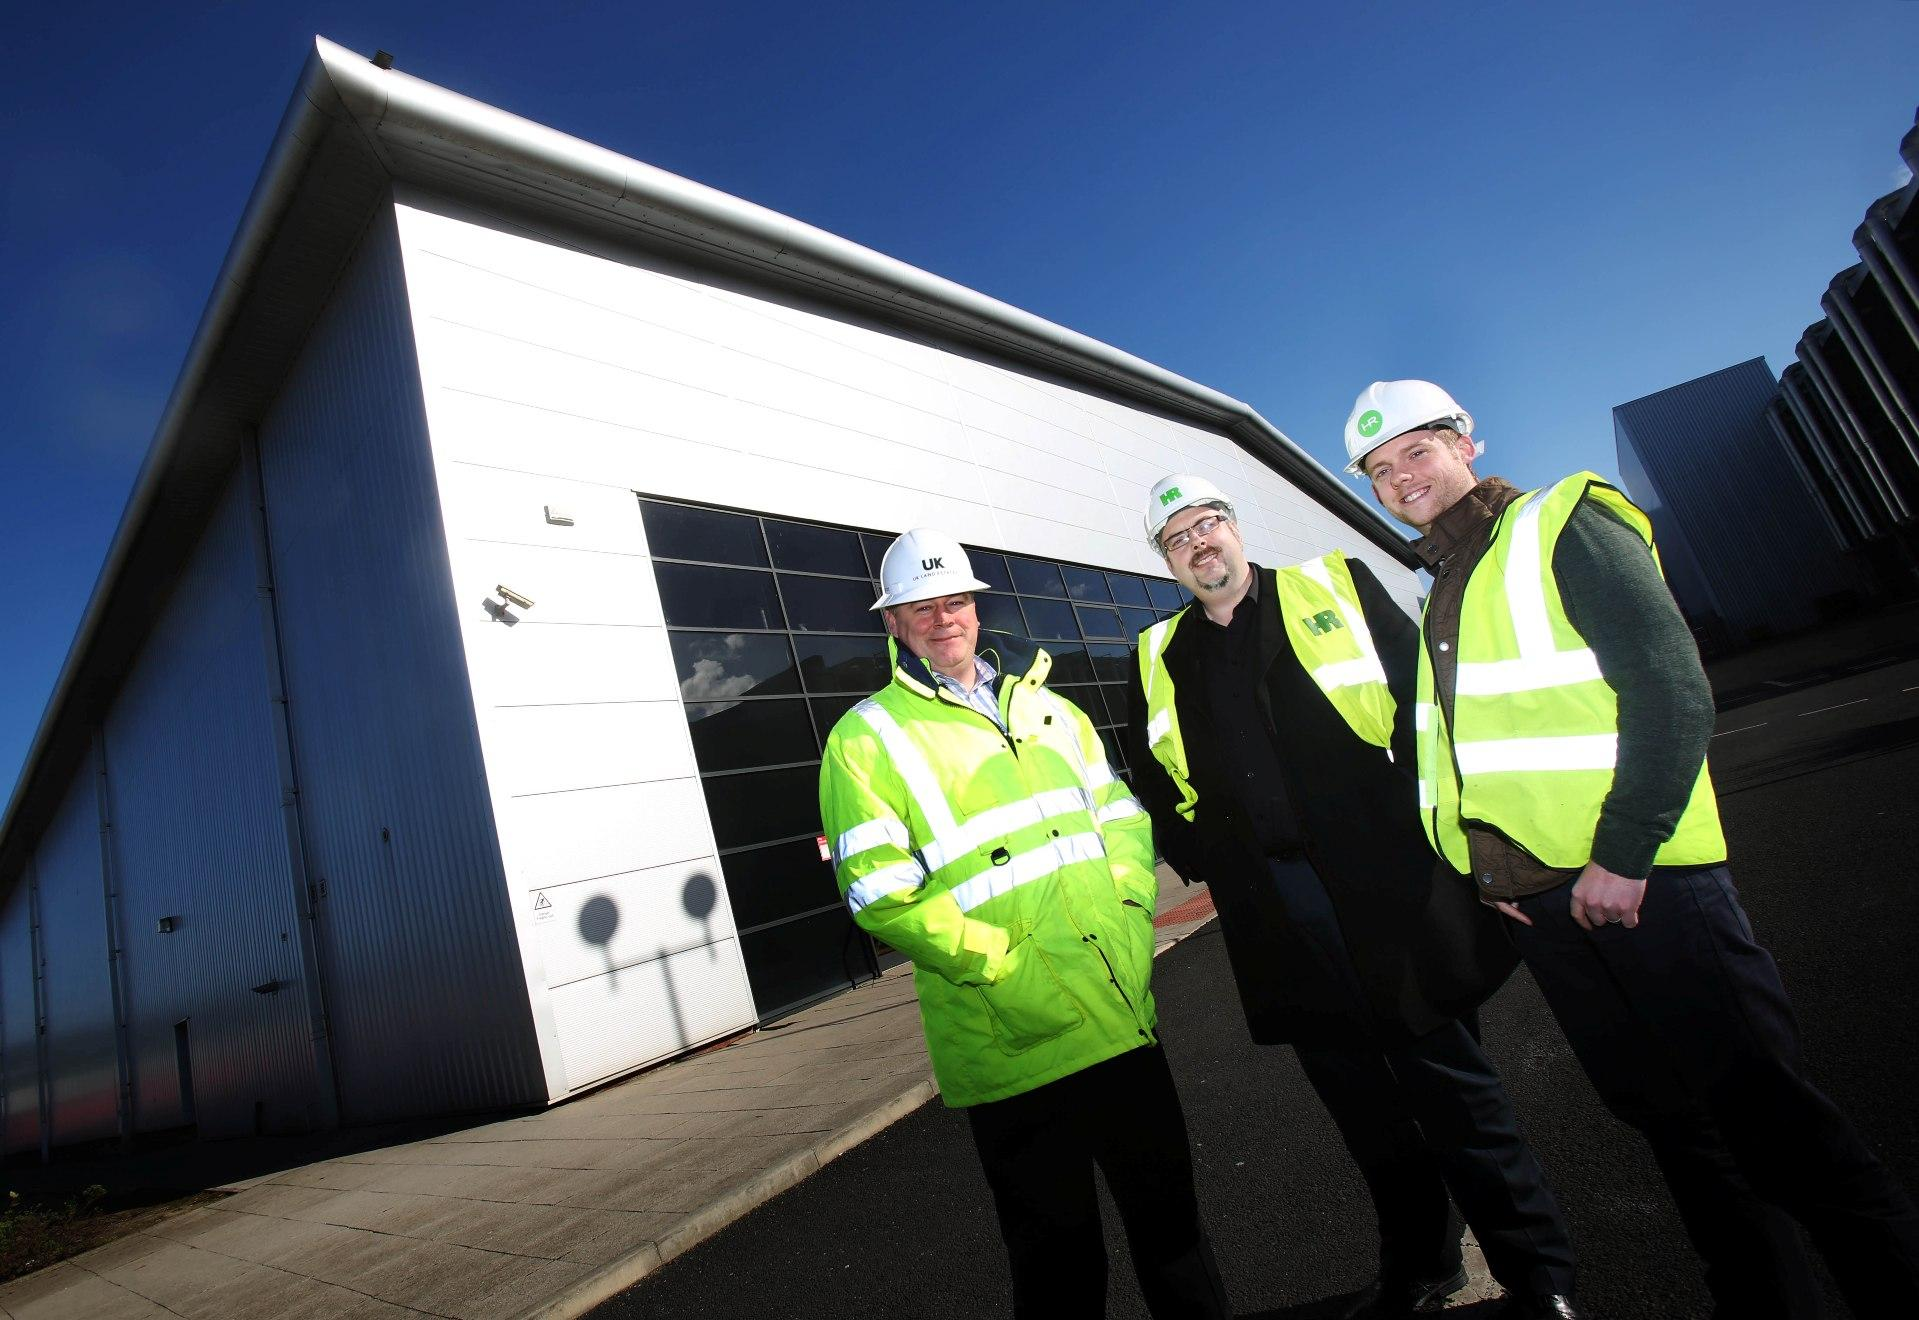 Pictured from left to right are Adrian Bartle, of UK Land Estates, with Barry Wilkinson and Craig Muldoon, from Howard Russell, outside the former